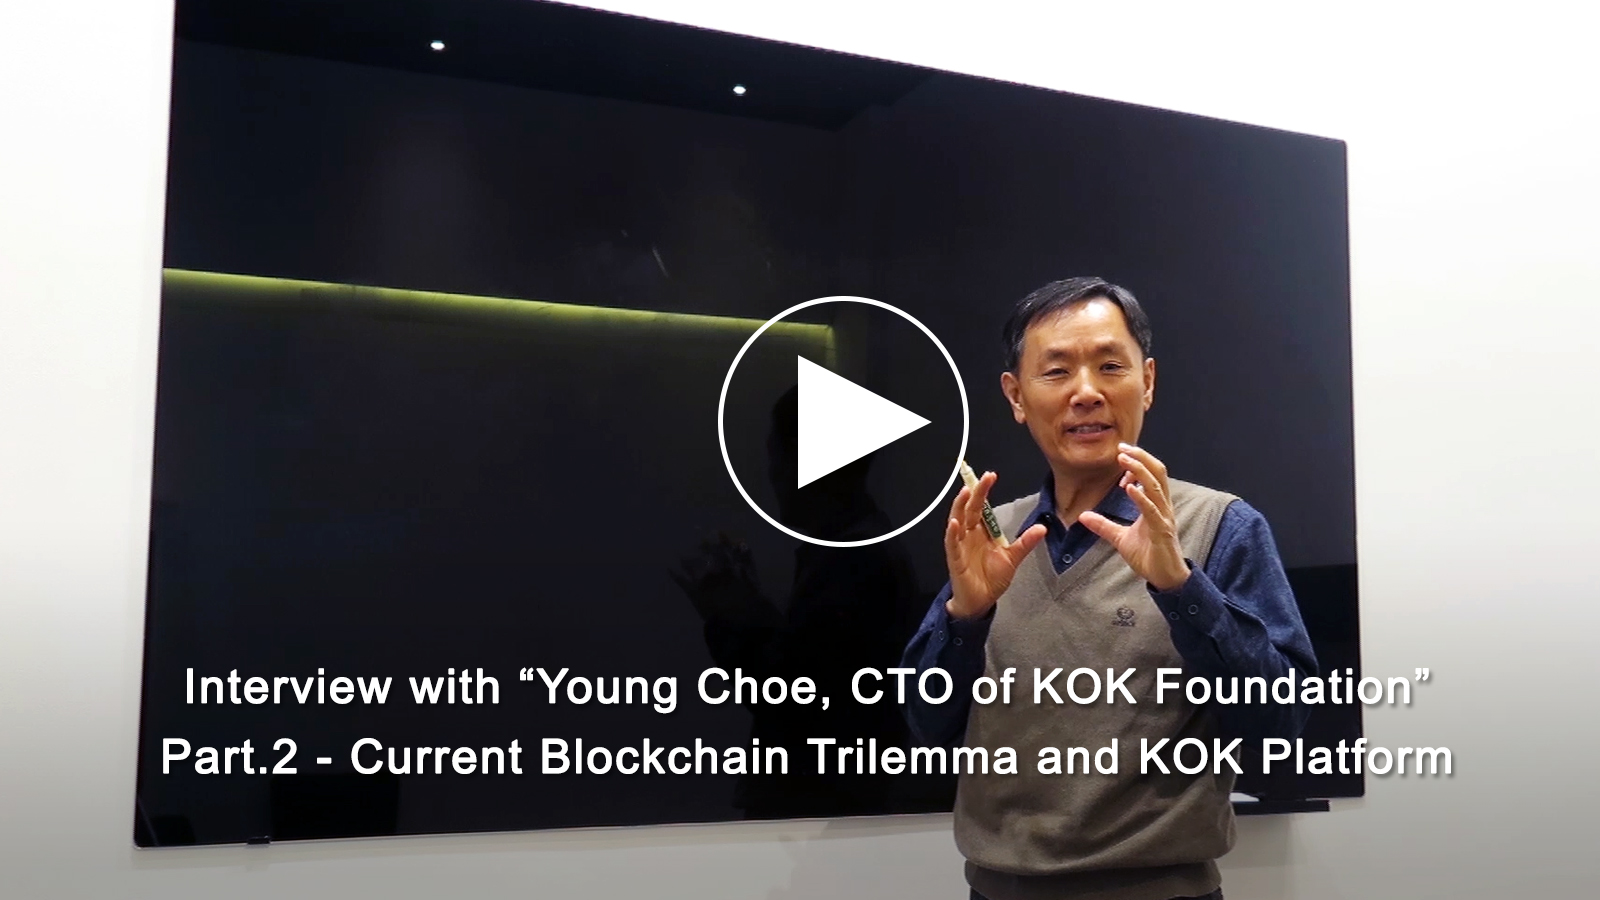 Interview with CTO Young Choe Part.2 - Current Blockchain Trilemma and KOK Platform